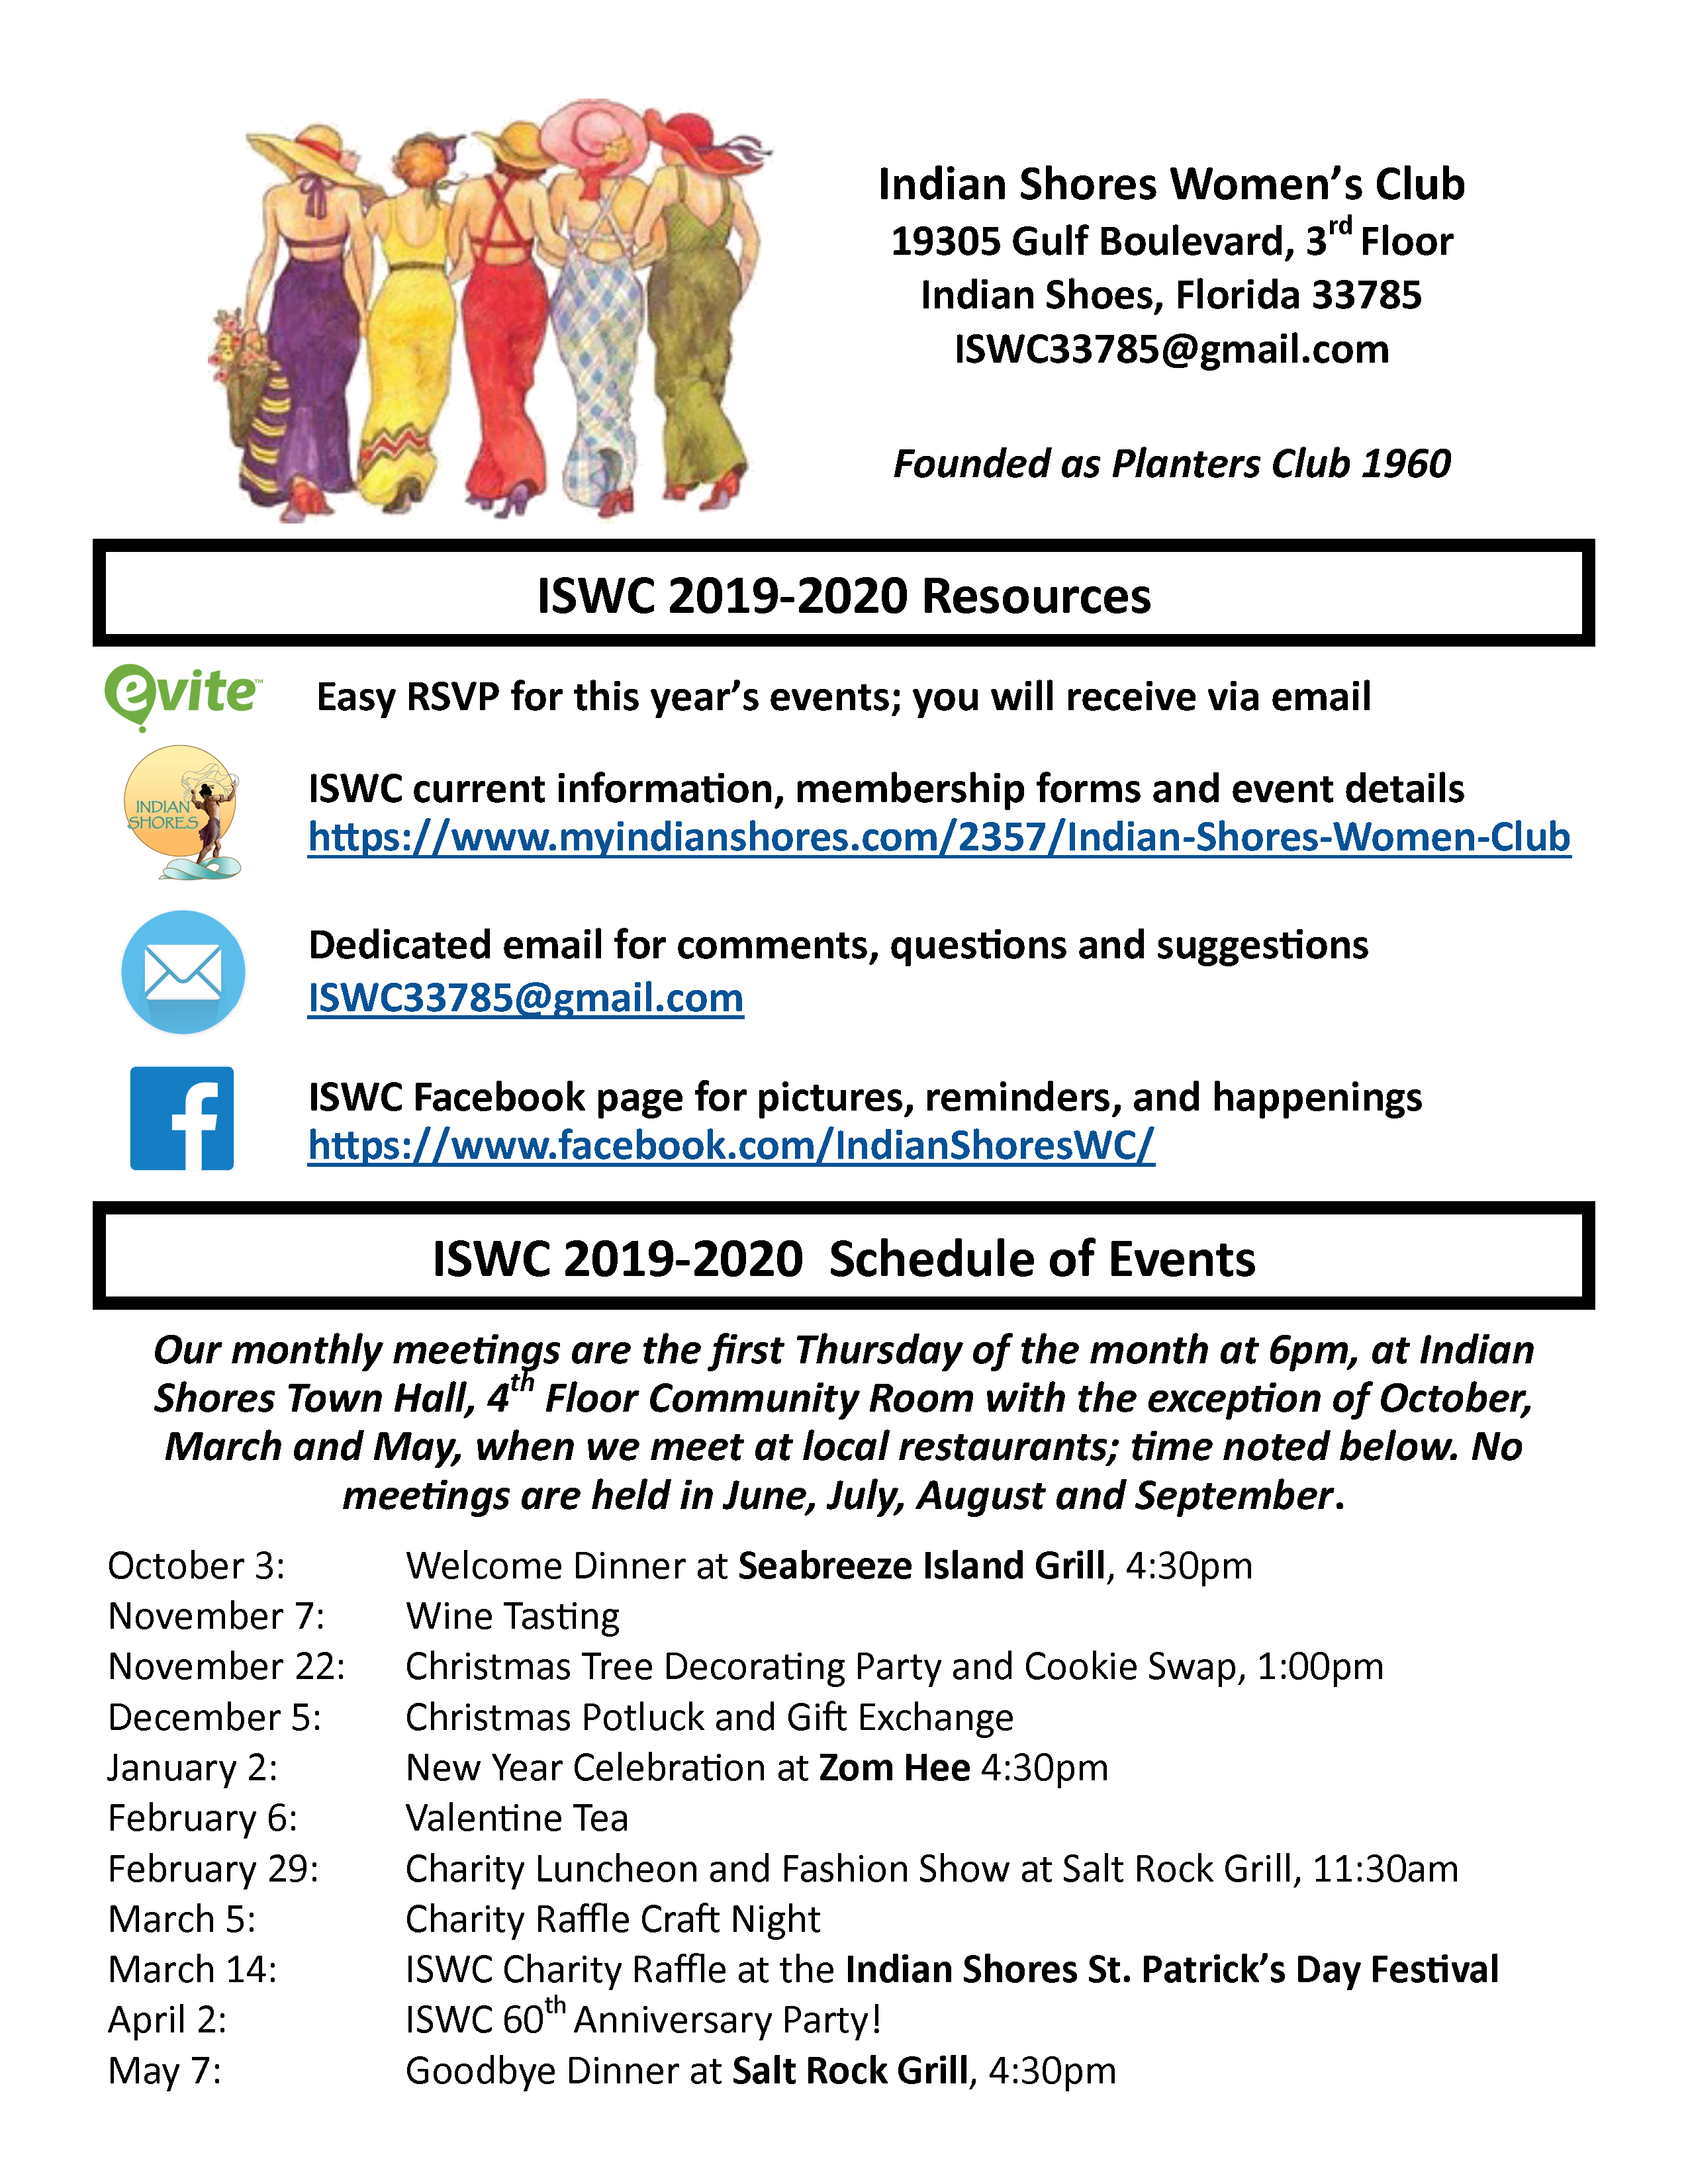 ISWC Events List 2019-2020